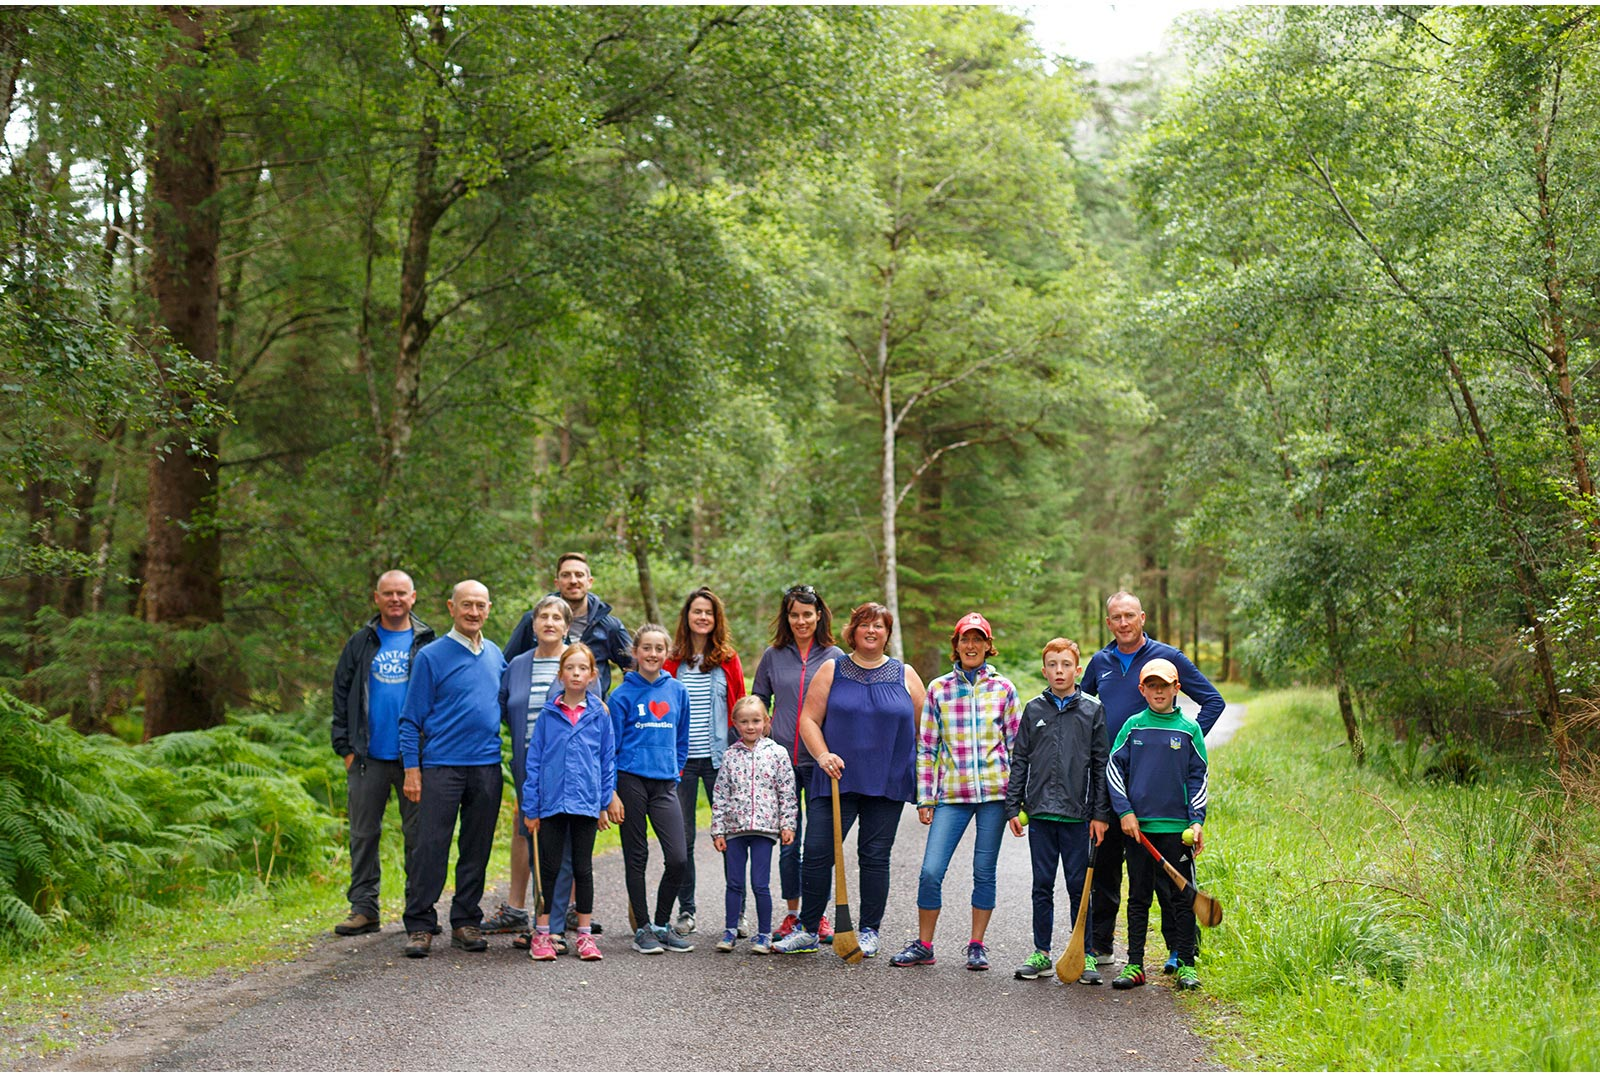 3 generations of a family line up casually across a path in the midle of the Gougane Barra foret park, some of them hold their hurleys